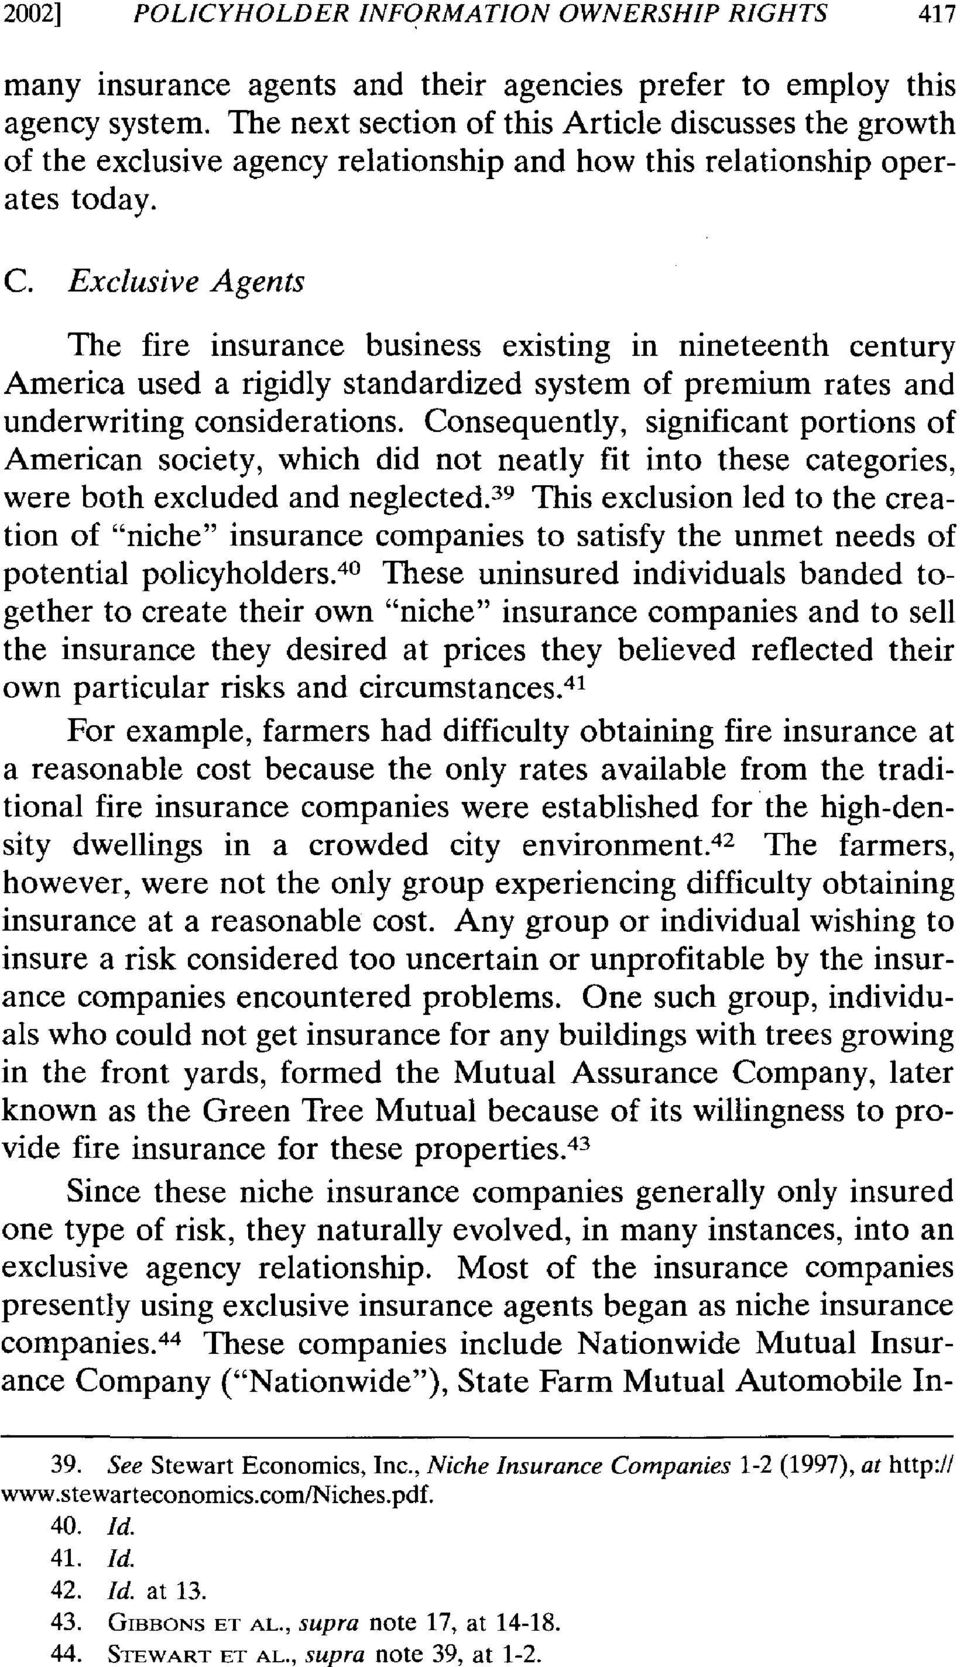 Exclusive Agents The fire insurance business existmg in nineteenth century America used a rigidly standardized system of premium rates and underwriting considerations.